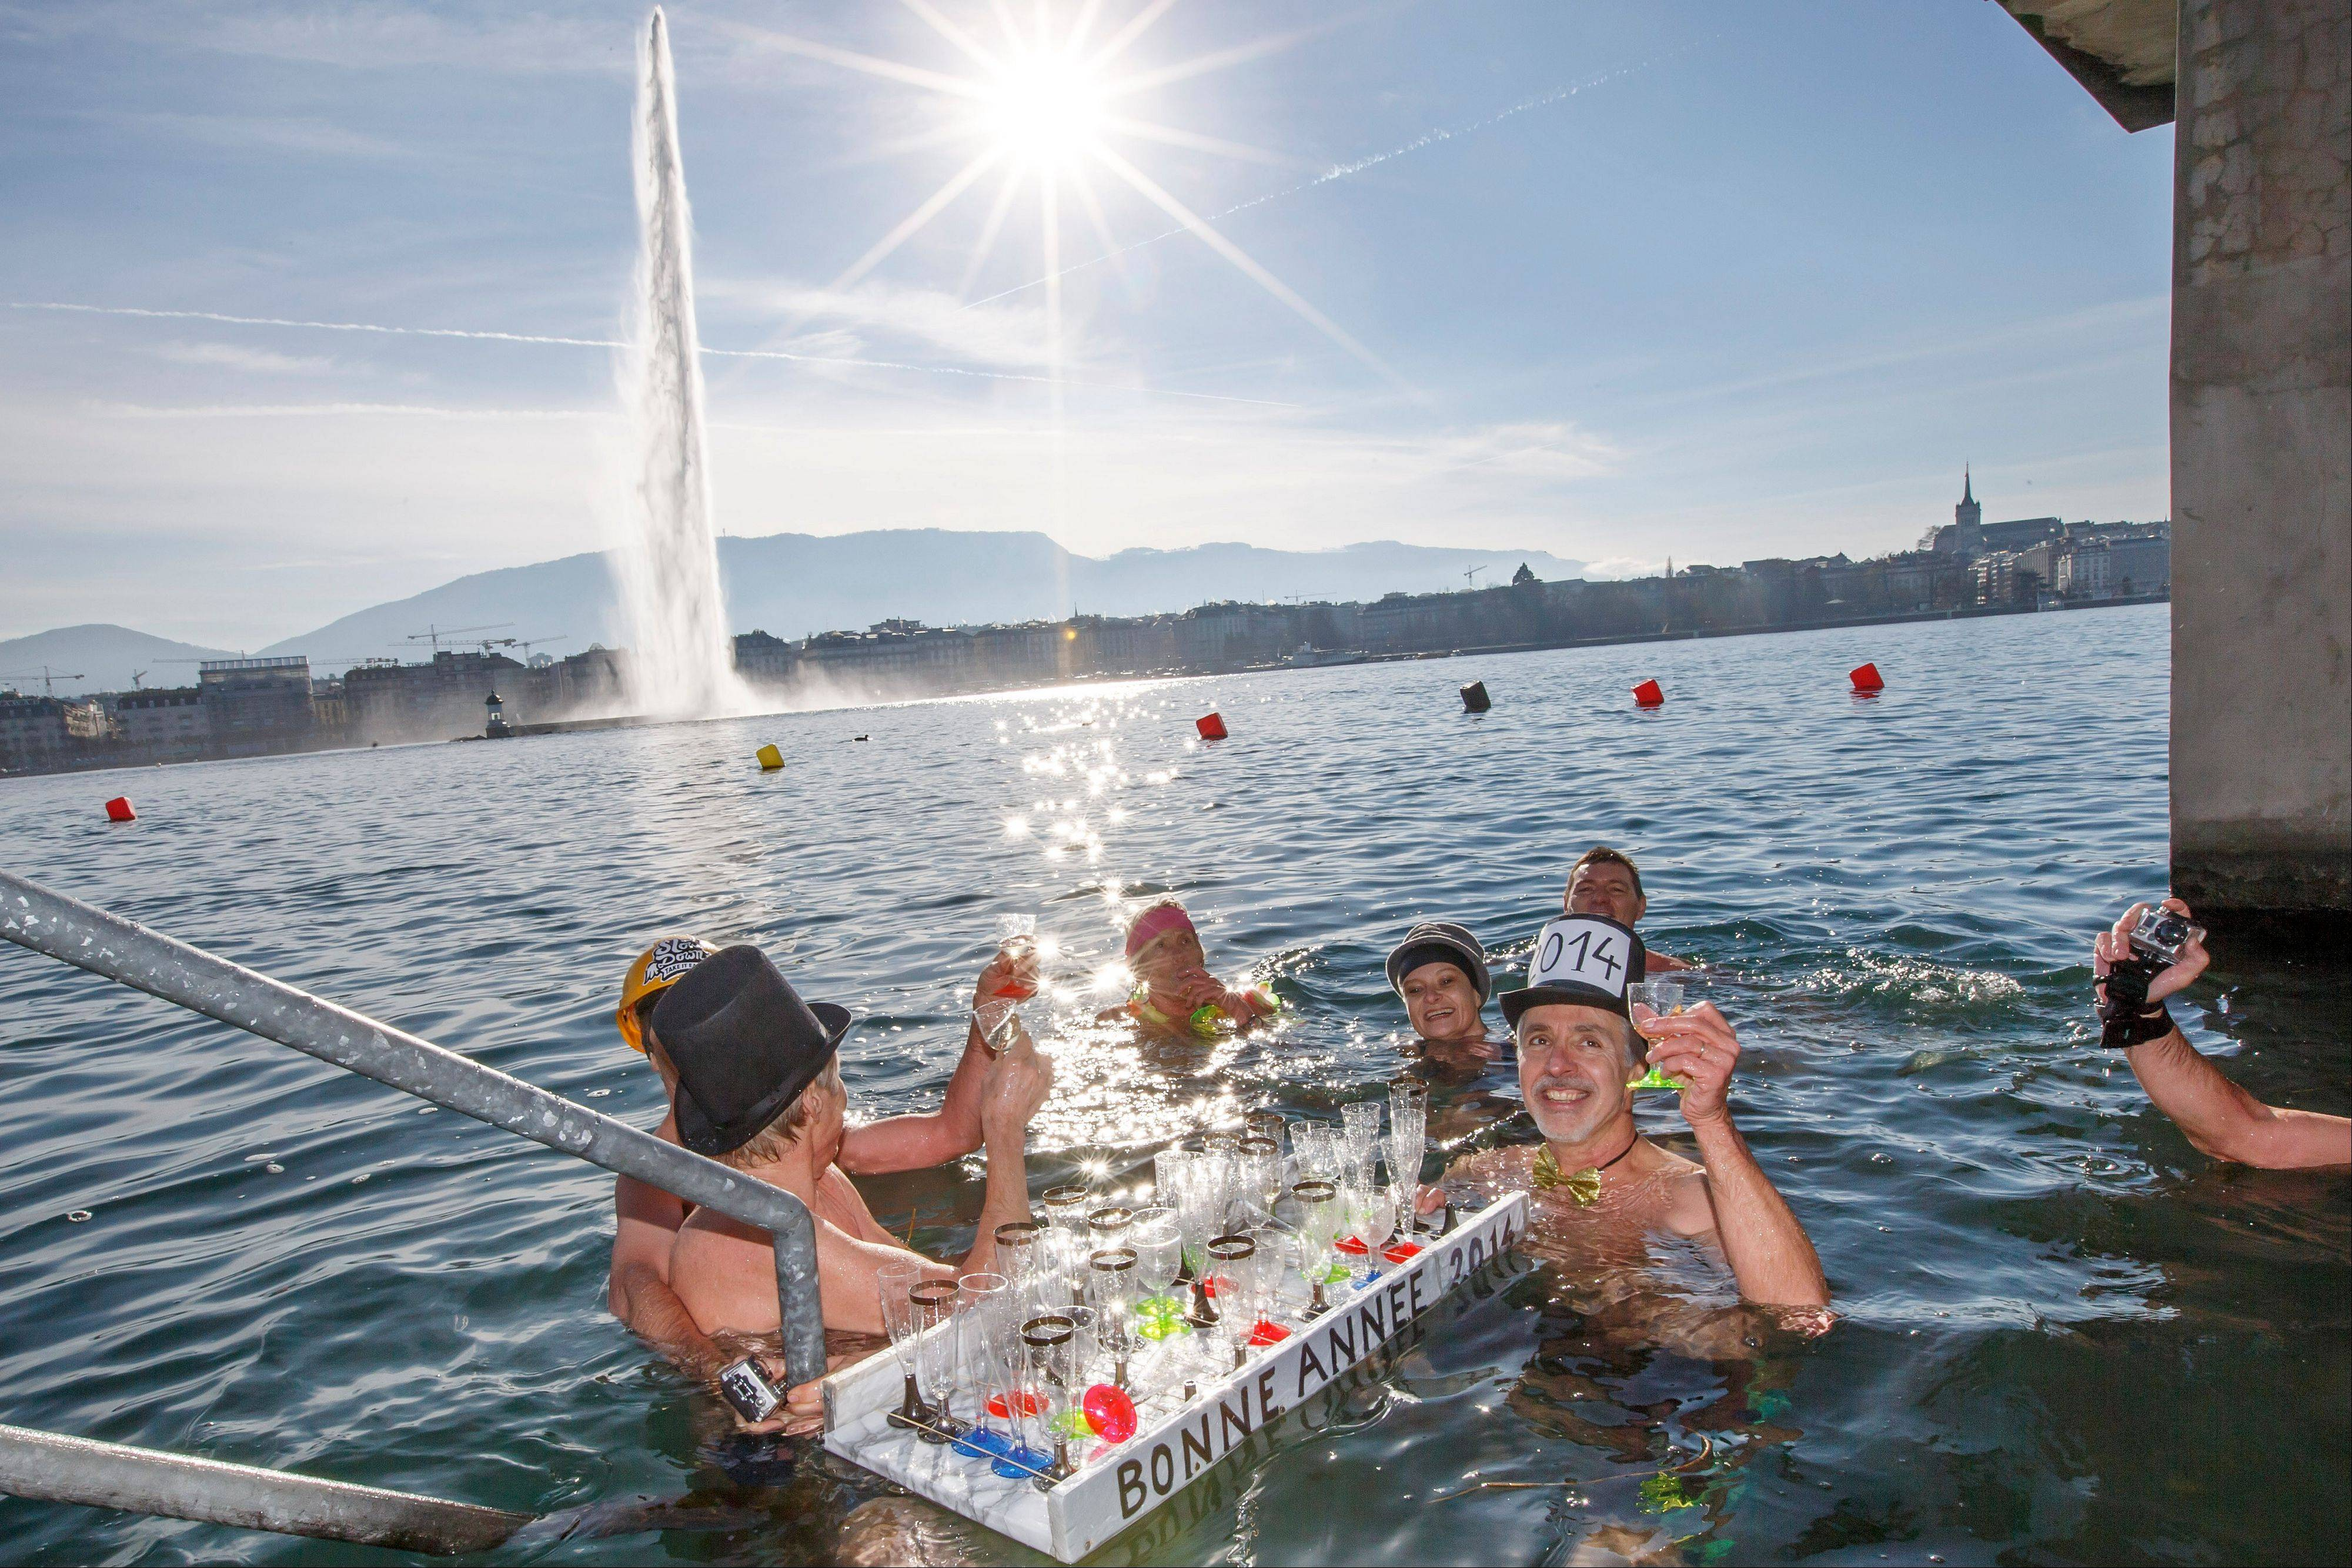 People toast with champagne while swimming in the cold water, during the annual swim in the Lake of Geneva for celebrating the New Year at the Bains des Paquis, in Geneva, Switzerland, Wednesday, Jan. 1, 2014.